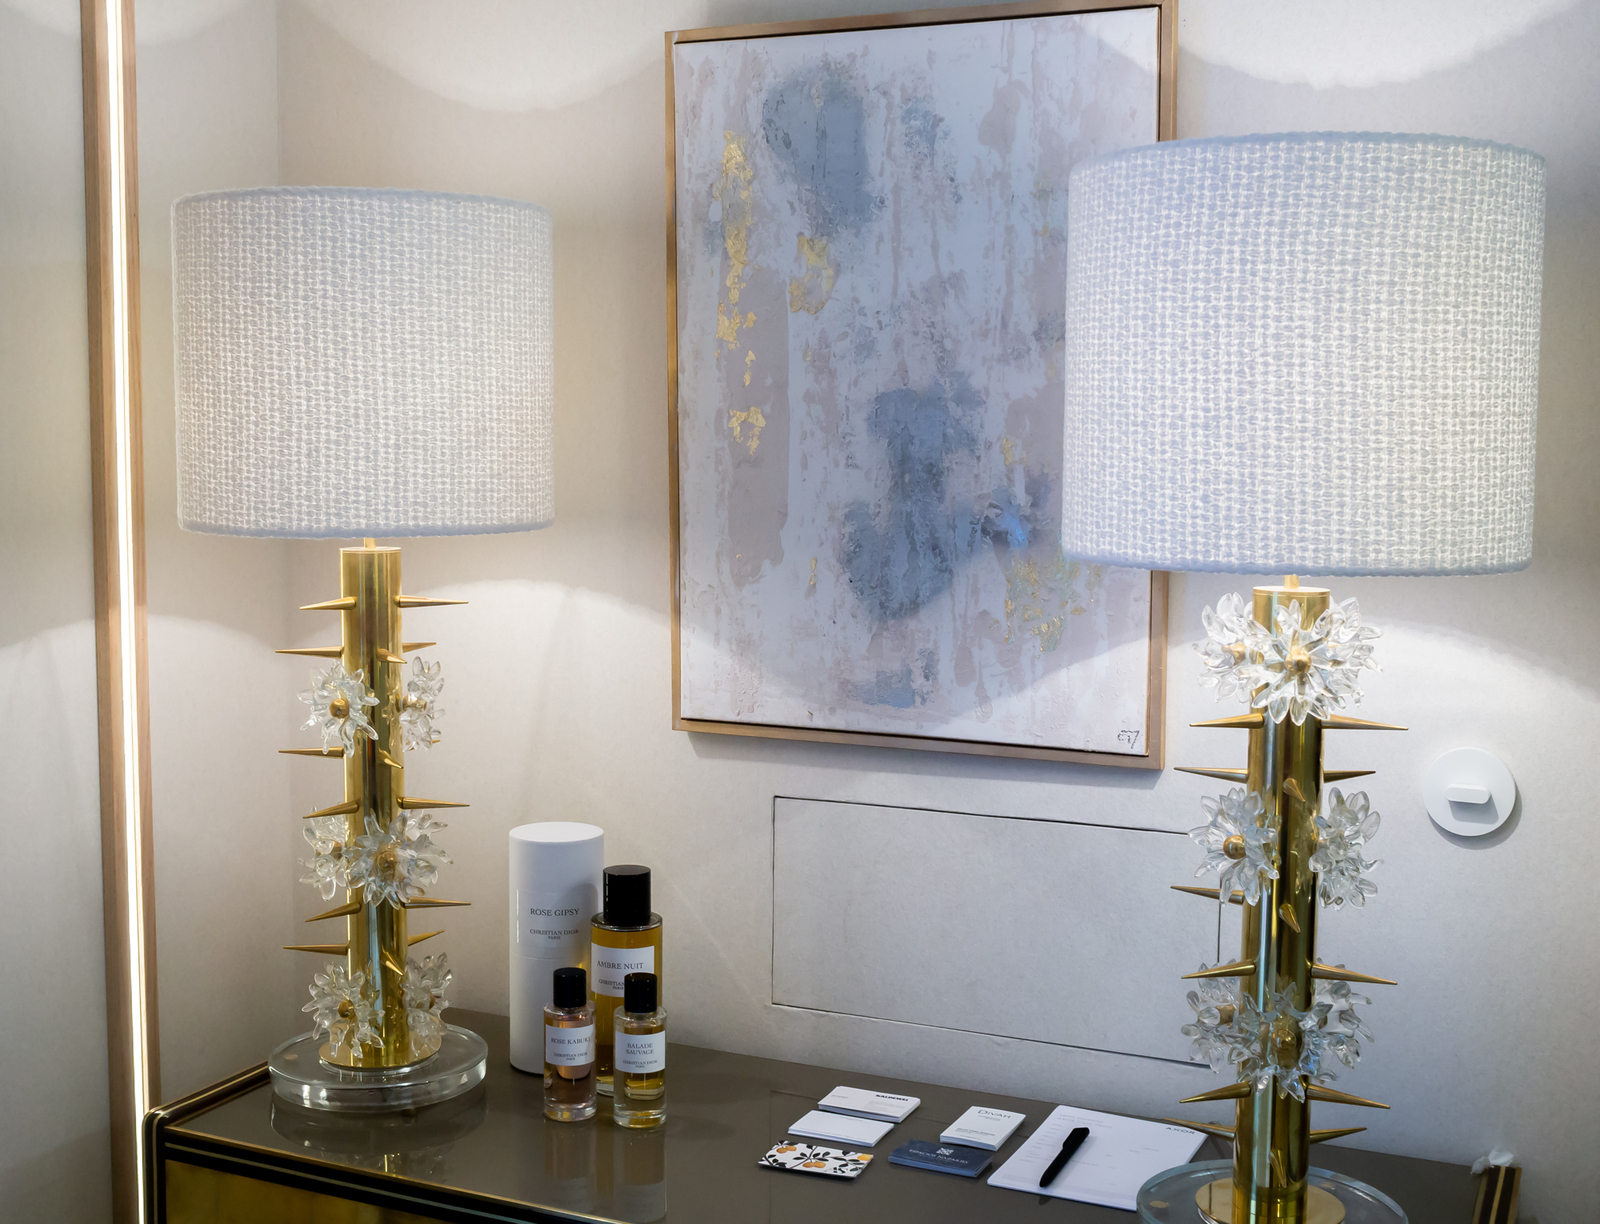 Murano glass vintage lamps at Casa Decor 2019